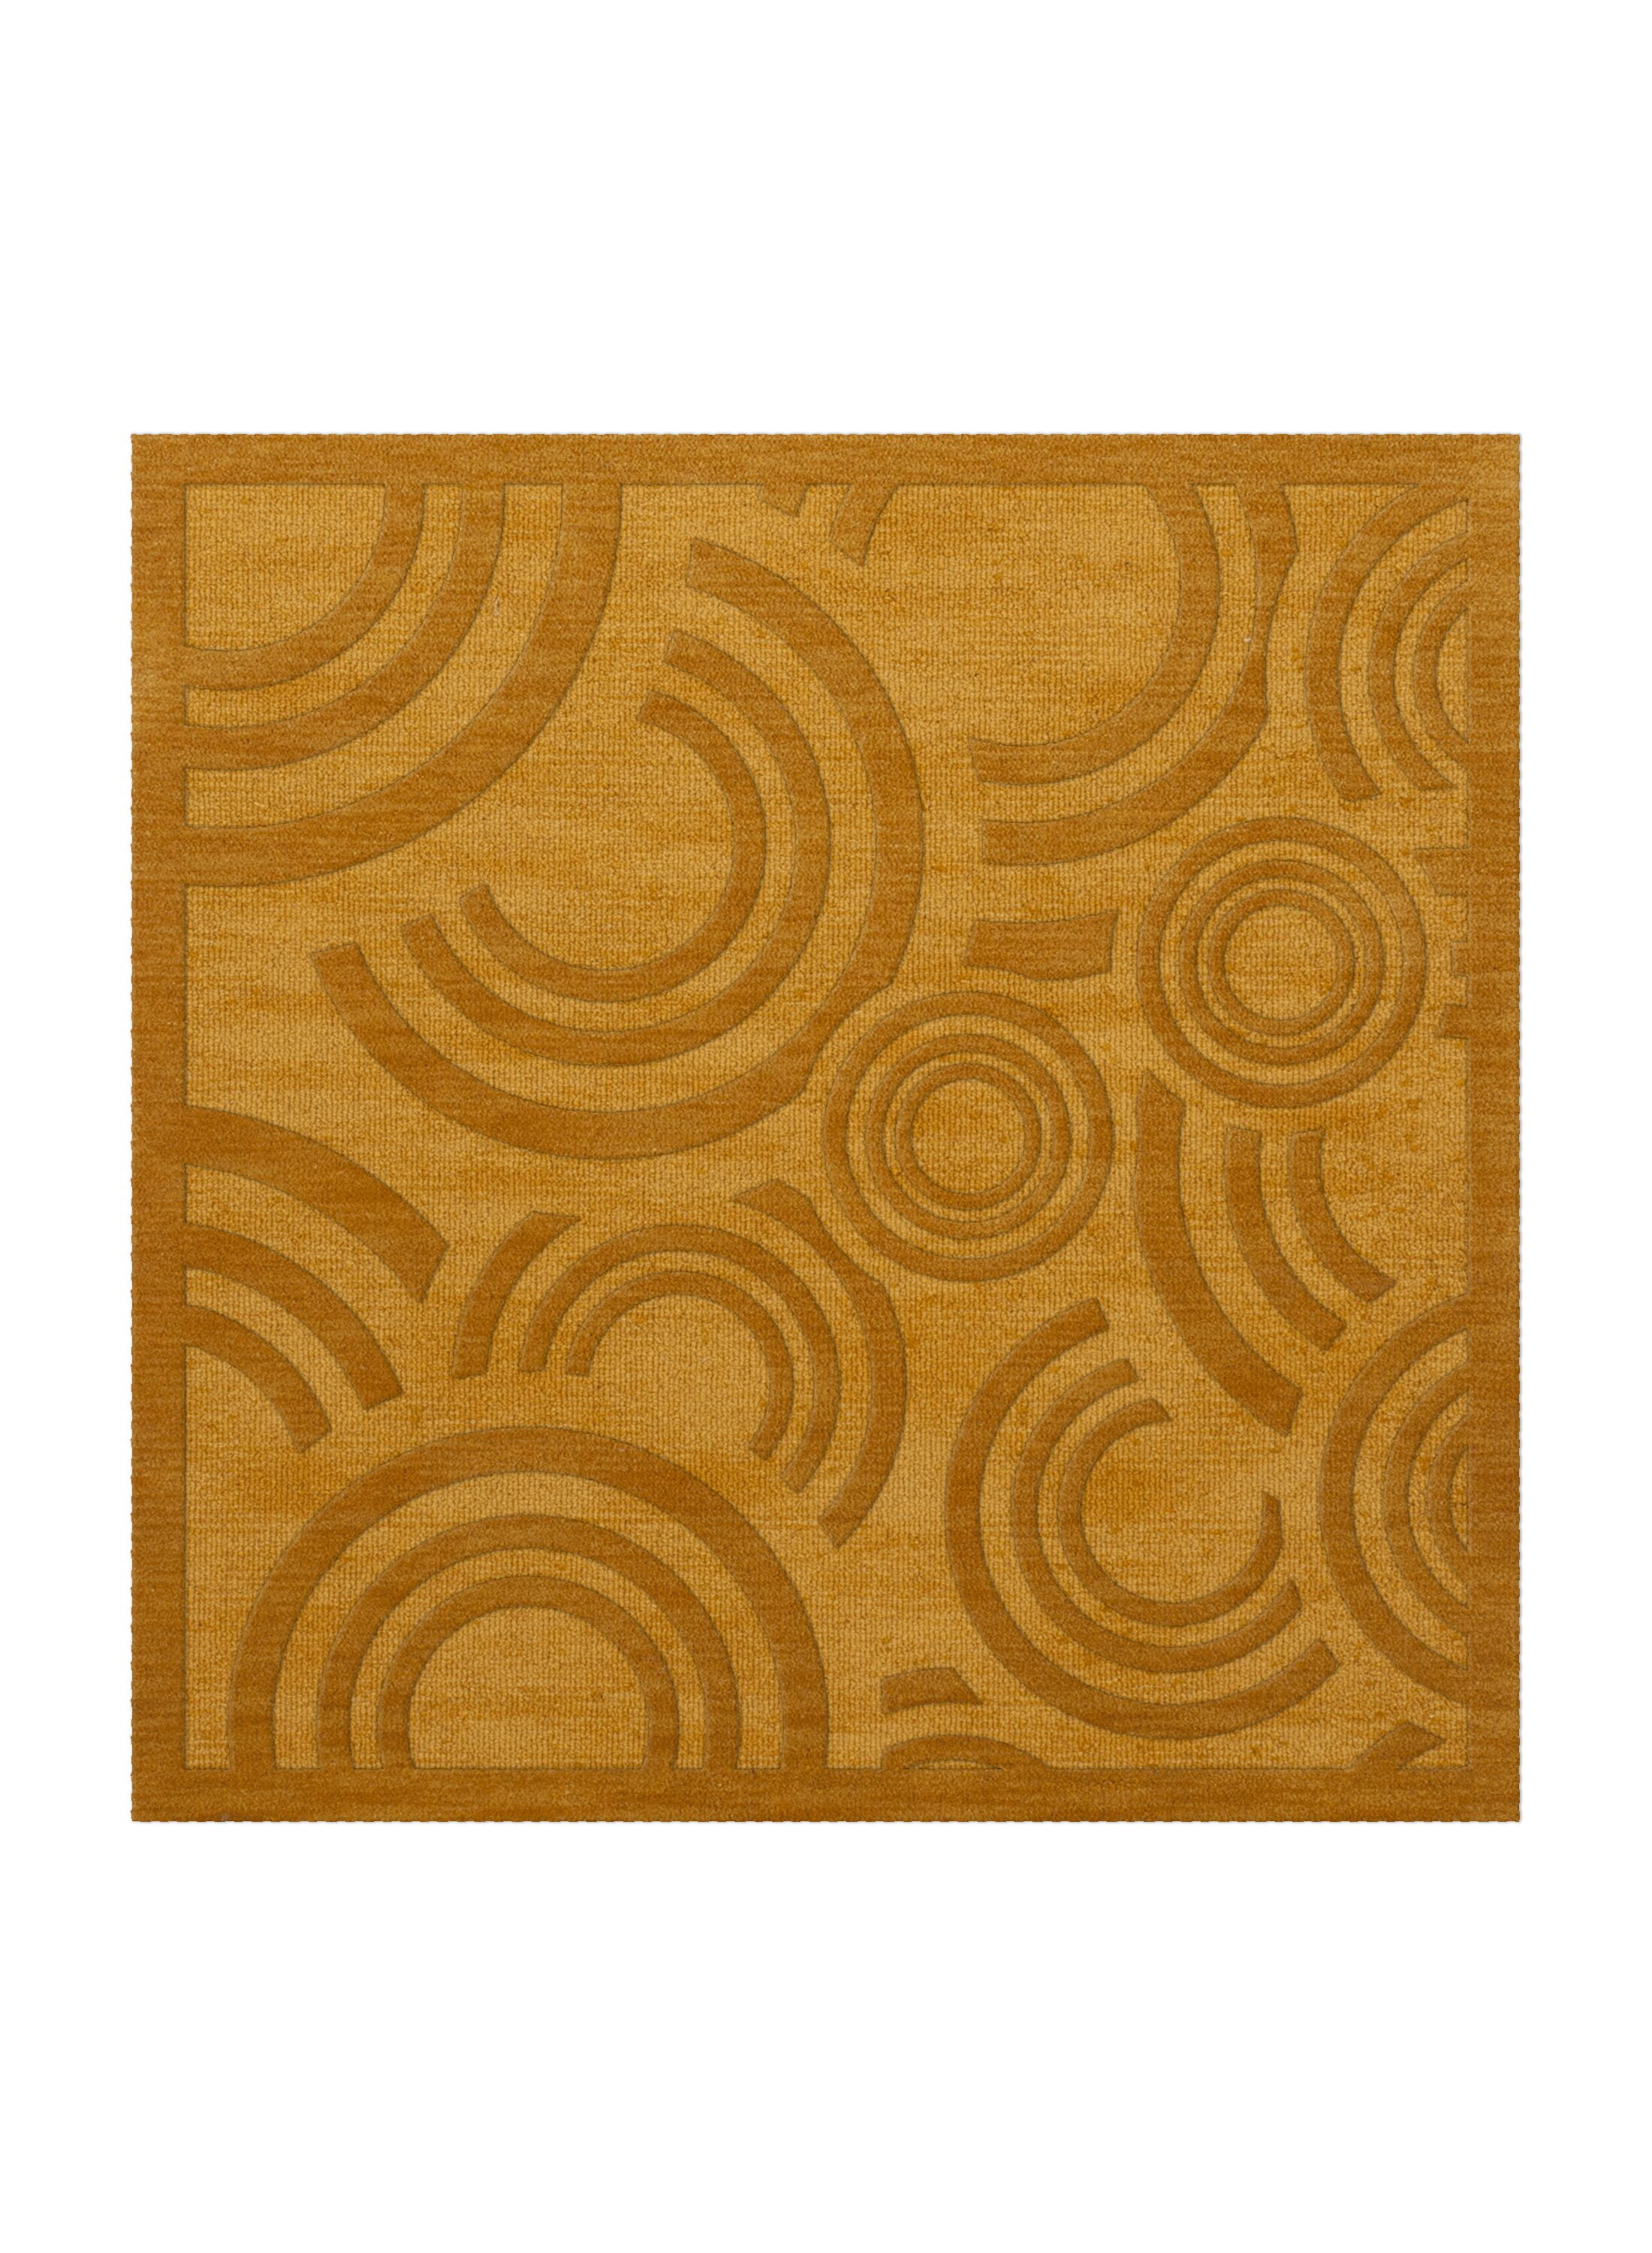 Dover Tufted Wool Butterscotch Area Rug Rug Size: Square 12'